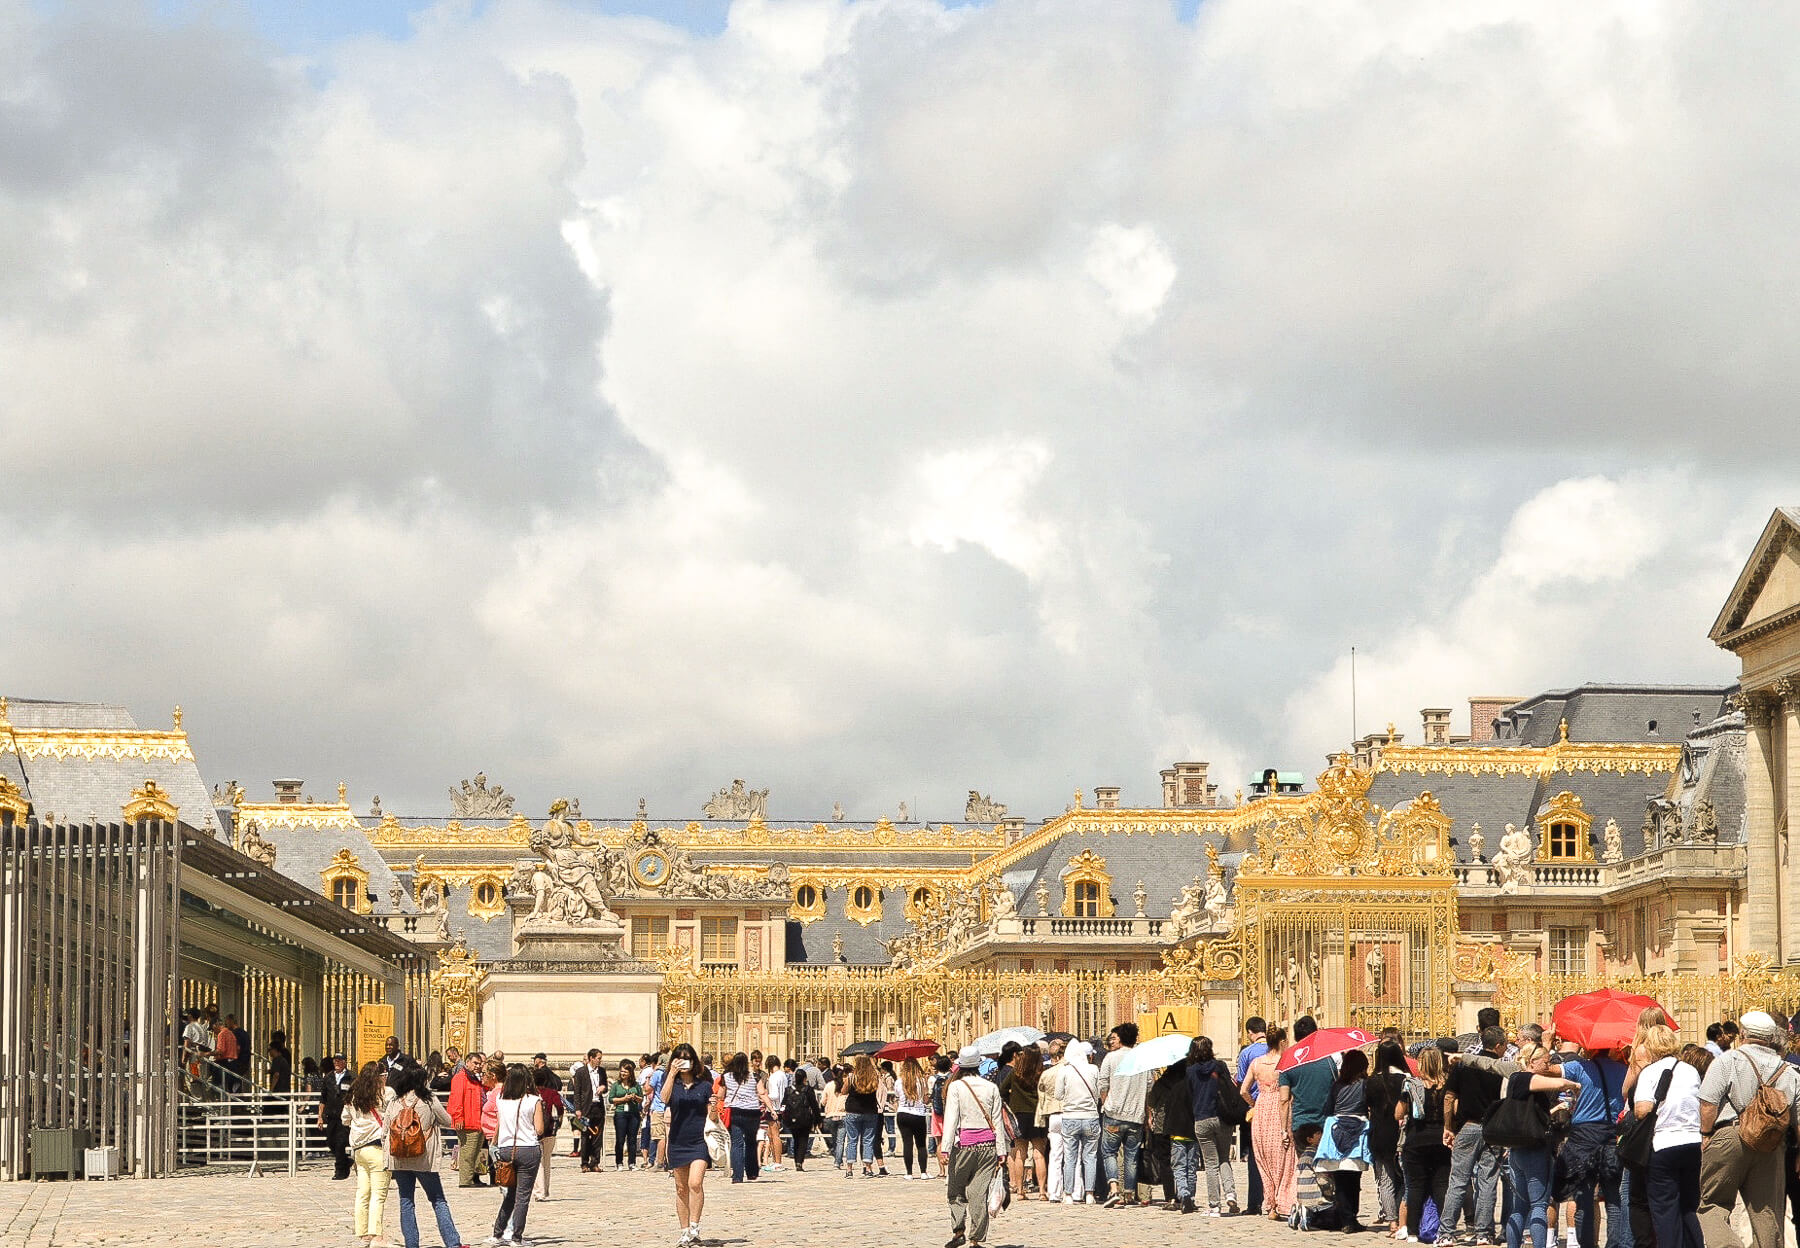 Long queue of people waiting to enter a beautiful golden palace - Palace of Versailles